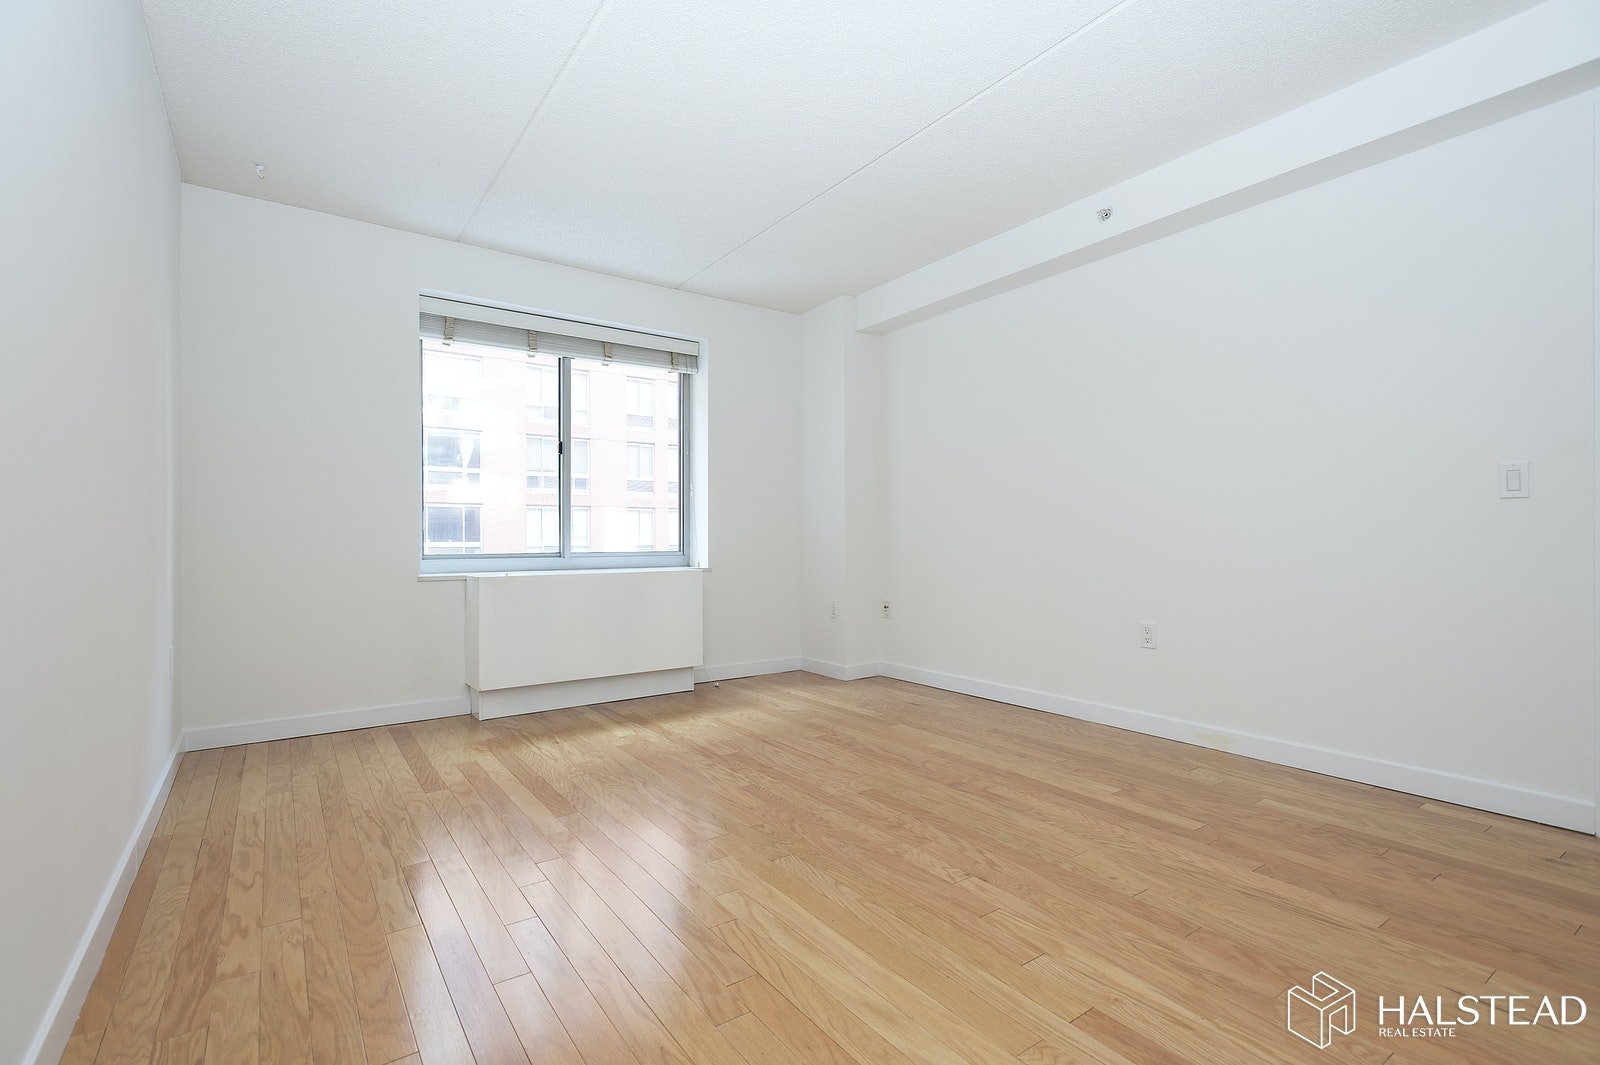 555 West 23rd Street N6p, Chelsea, NYC, 10011, $3,600, Rented Property, Halstead Real Estate, Photo 2